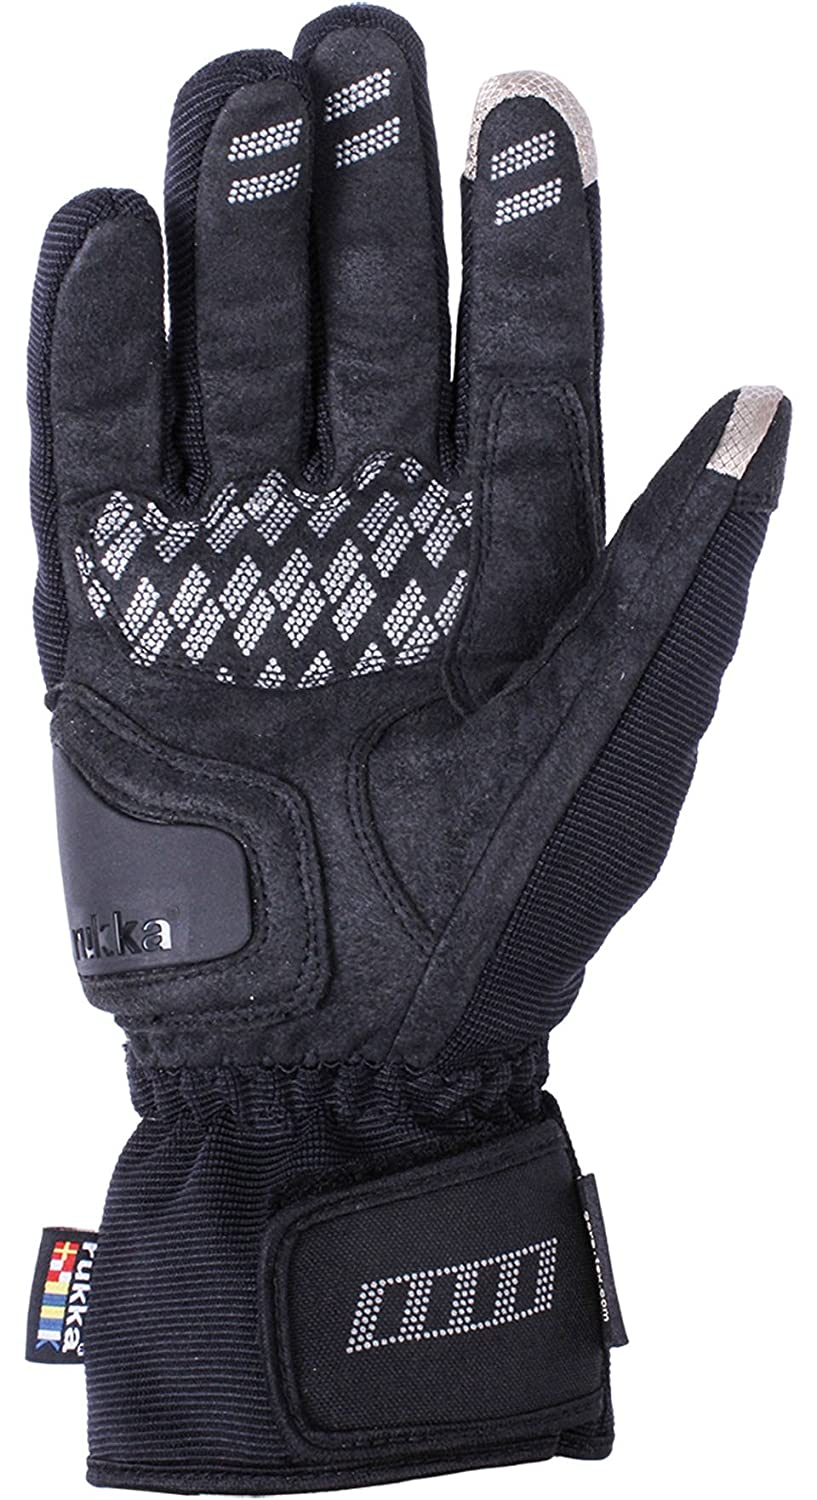 RUKKA VIRIUM TOUCH SCREEN TECH GTX GORETEX WATERPROOF MOTORCYCLE GLOVES BLACK M